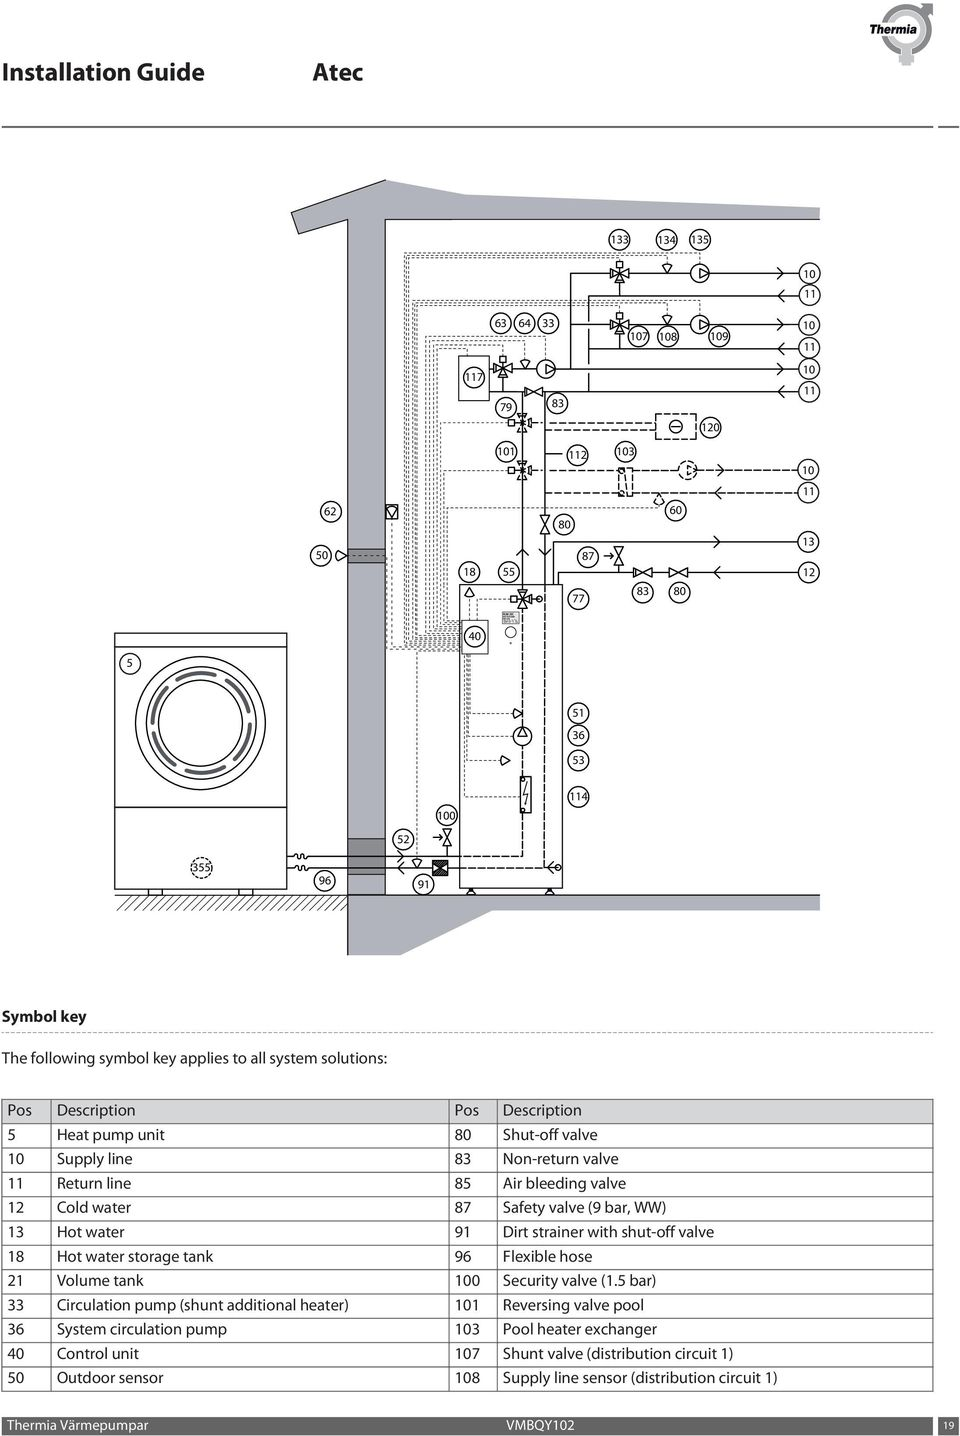 Installation Guide Atec Pdf Highoutput Compressors 101 Airzenith Compressor Mounting Wiring Bar Ww 13 Hot Water 91 Dirt Strainer With Shut Off Valve 18